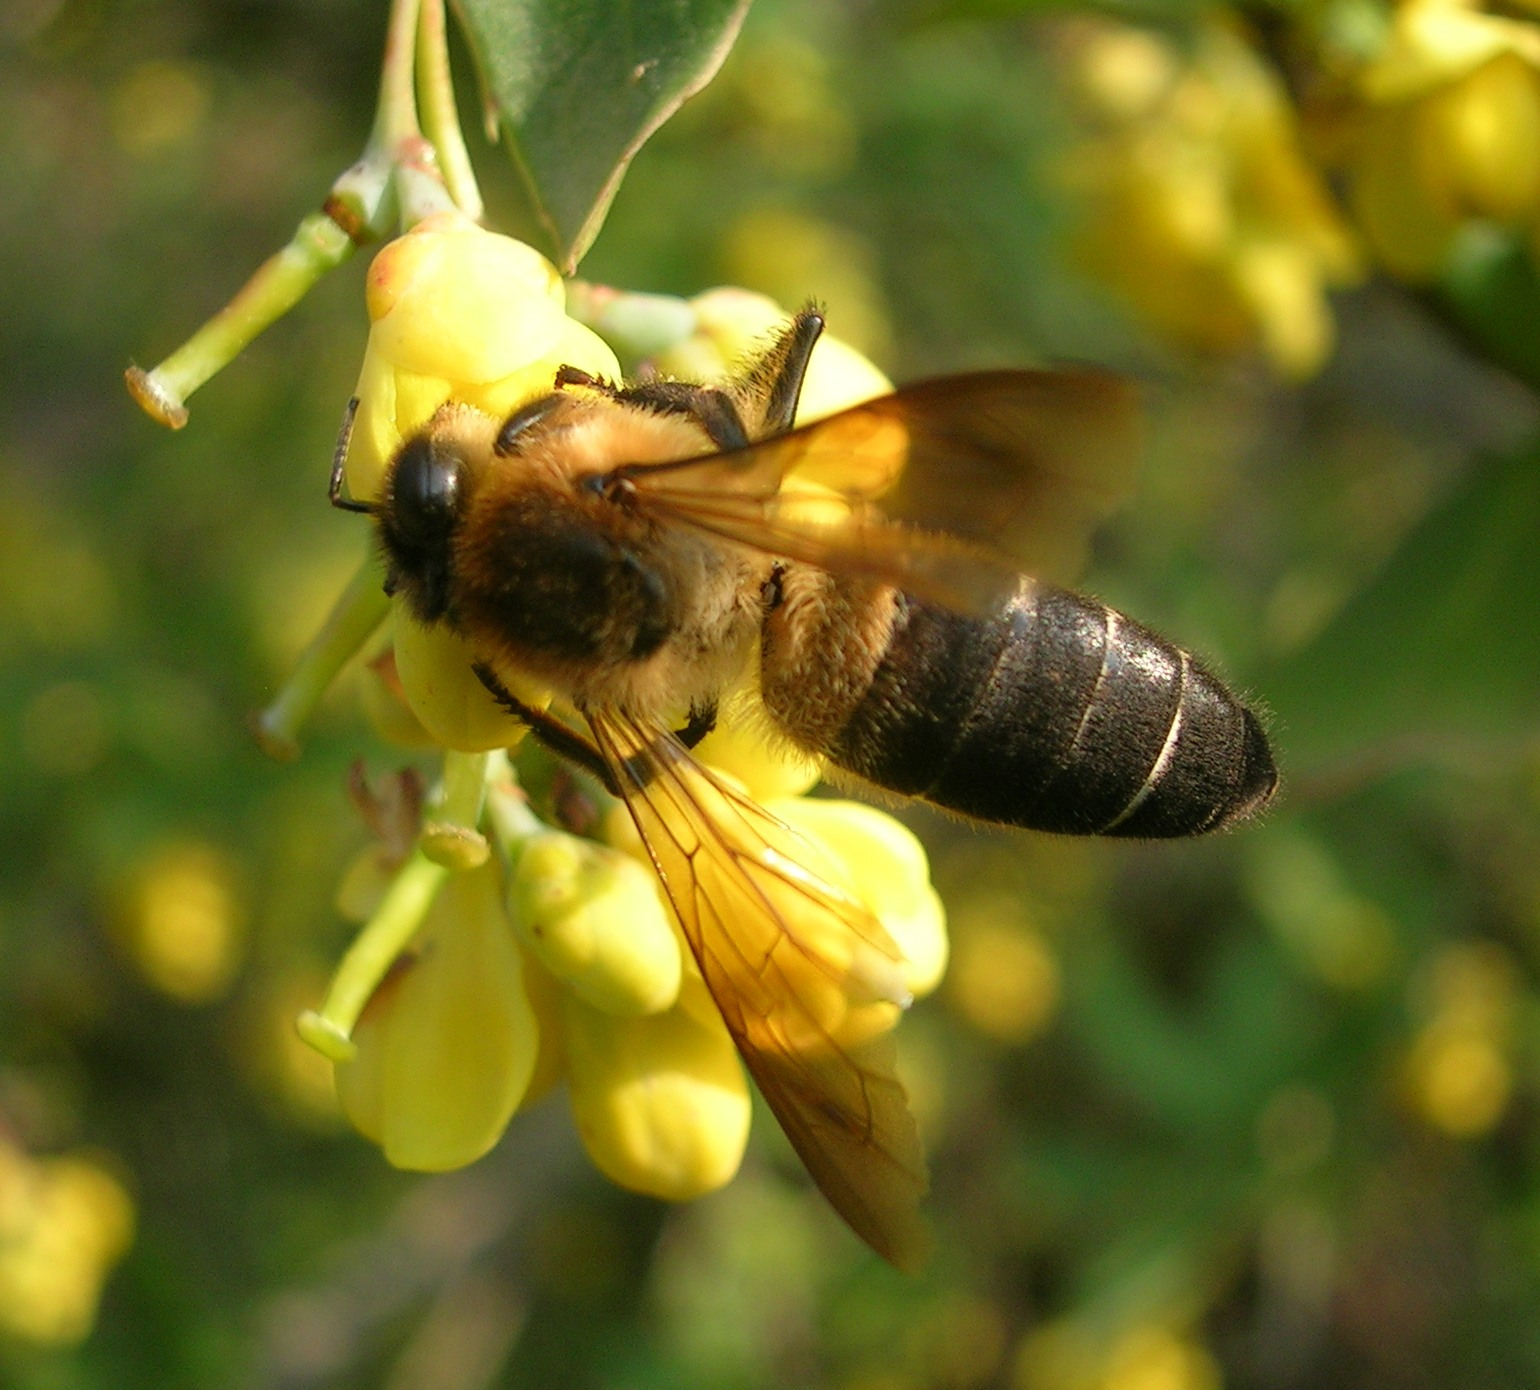 Himalayan Giant Honey Bee (Apis dorsata laboriosa), photo by L. Shyamal